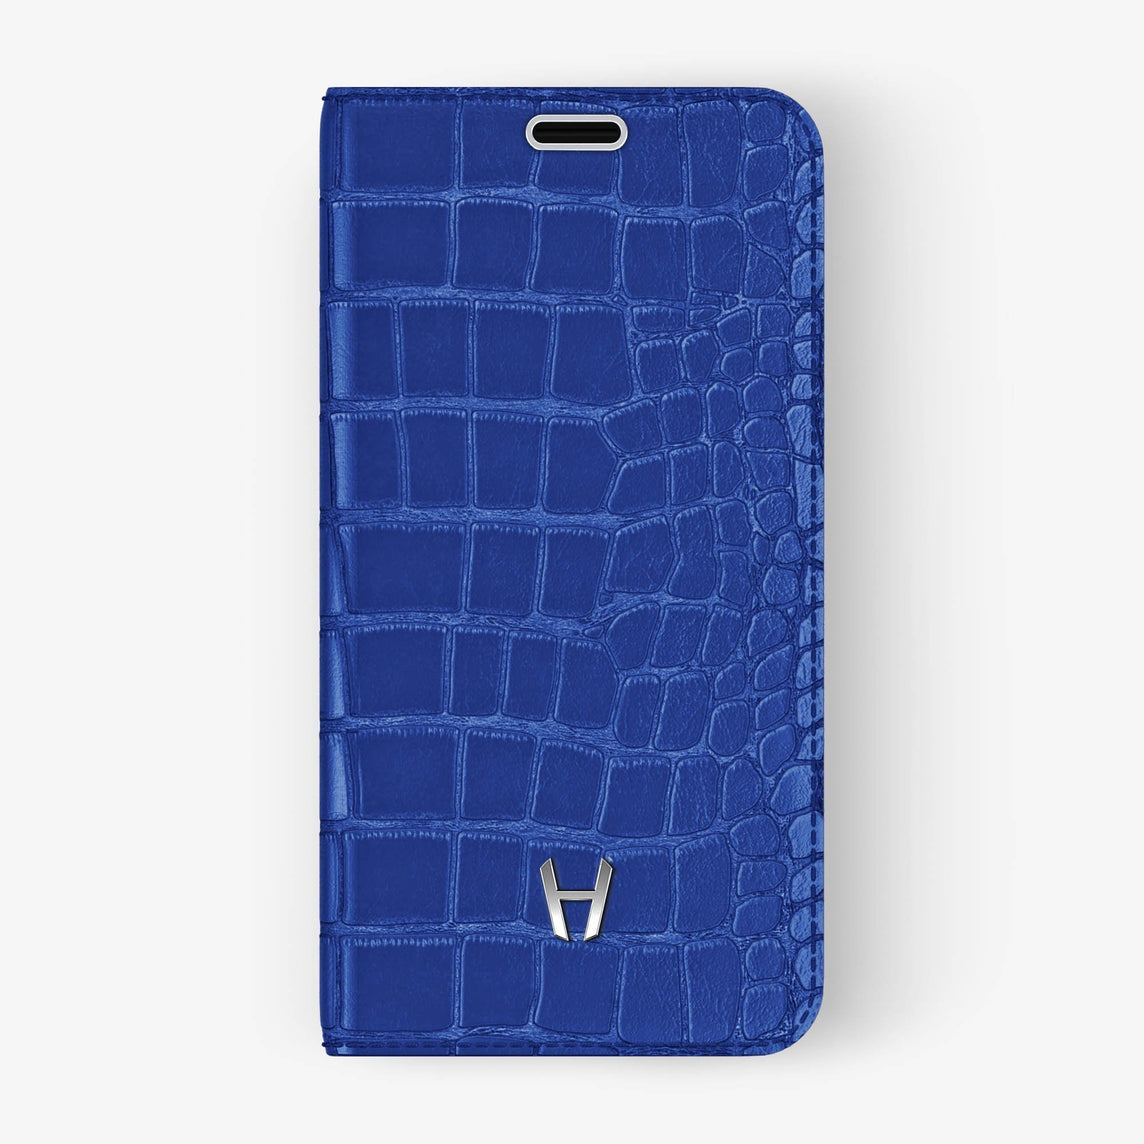 Alligator Folio Case iPhone Xs Max | Peony Blue - Stainless Steel without-personalization